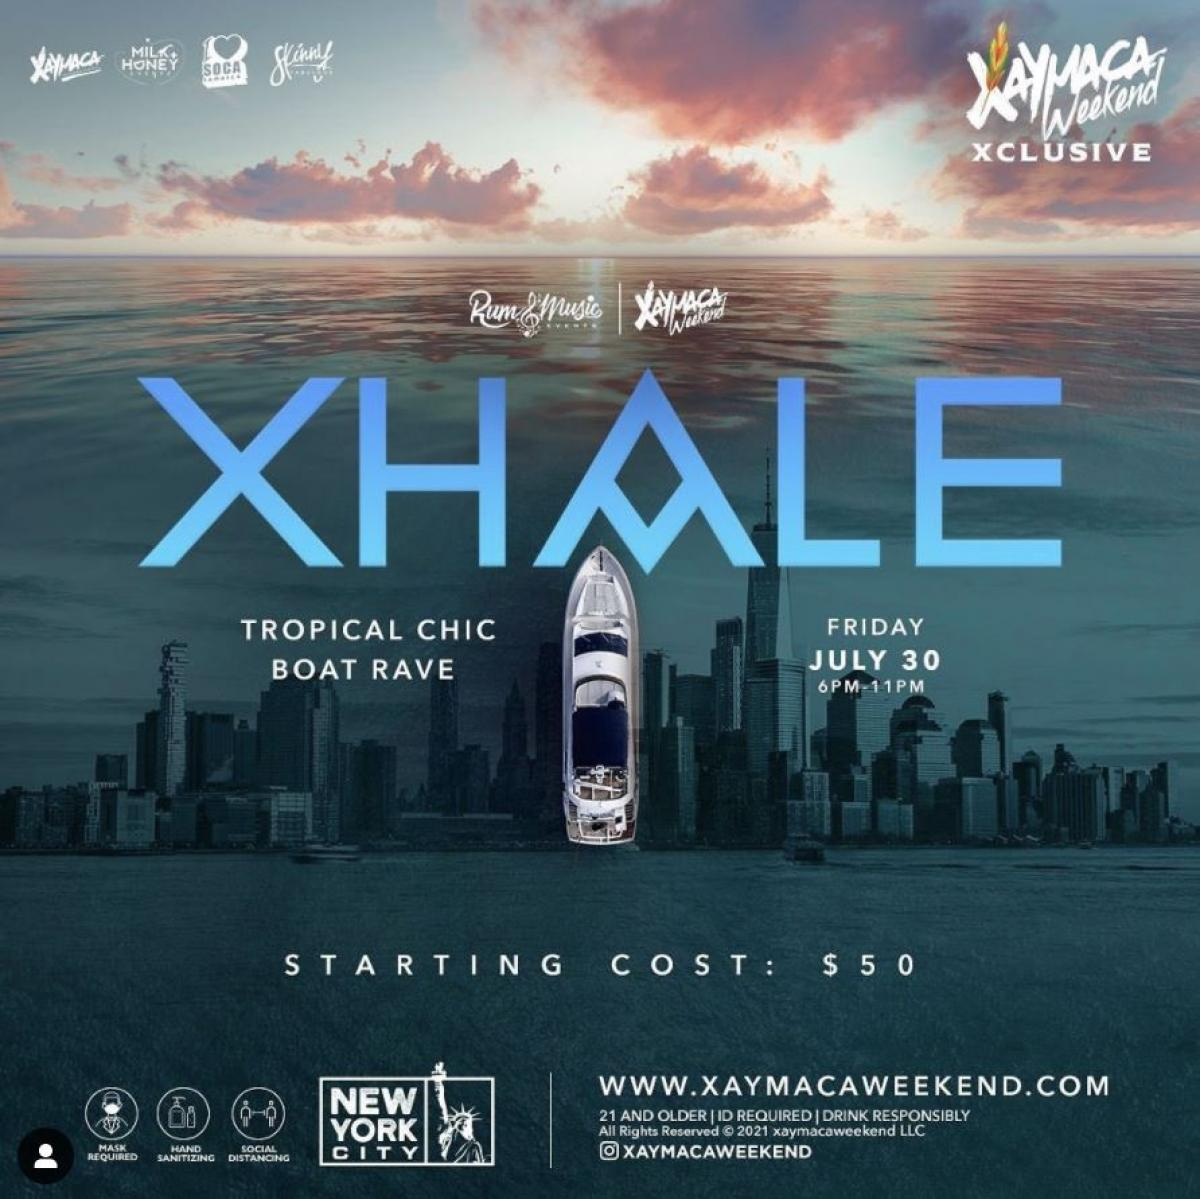 Xhale flyer or graphic.